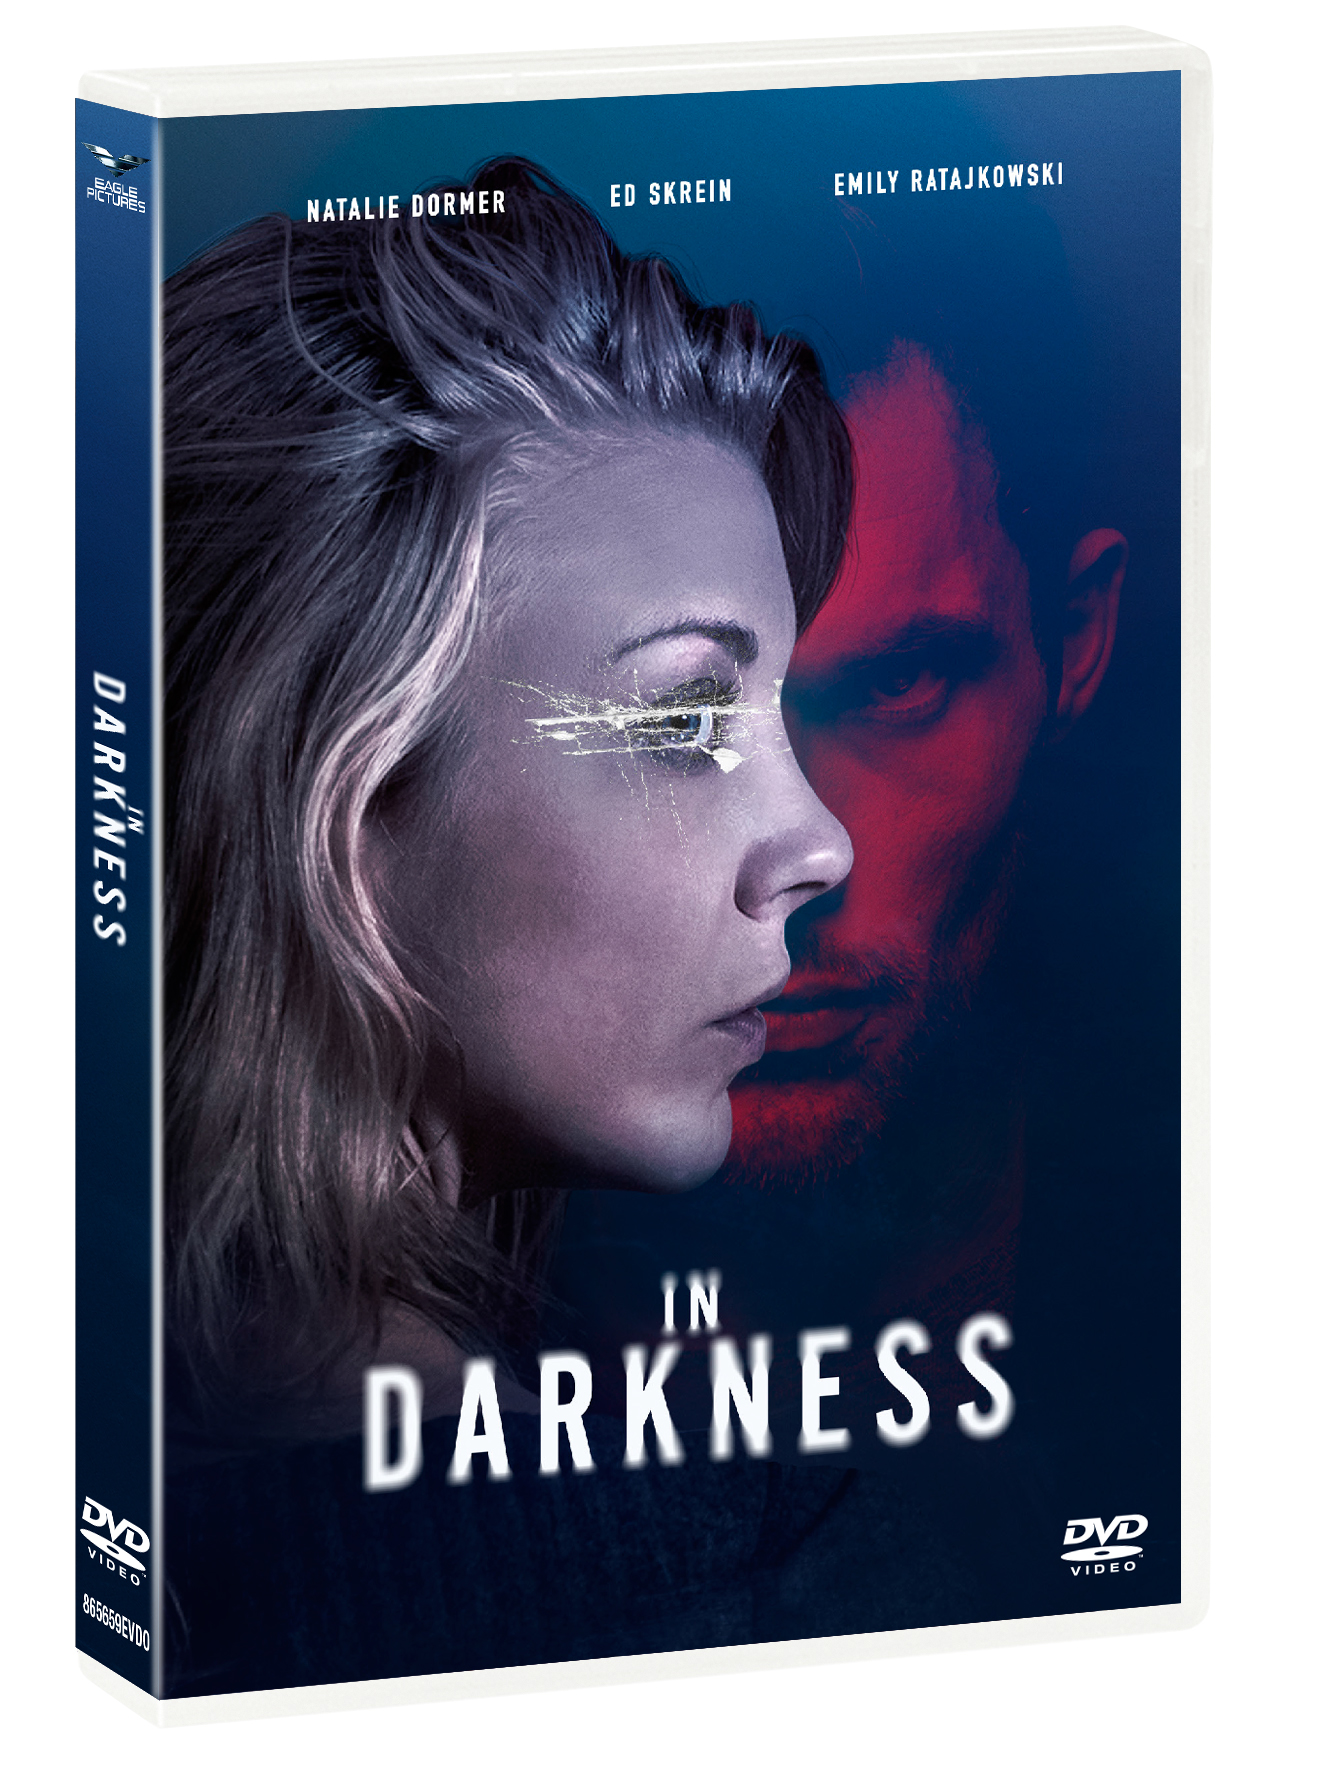 IN DARKNESS - NELL'OSCURITA' (DVD)